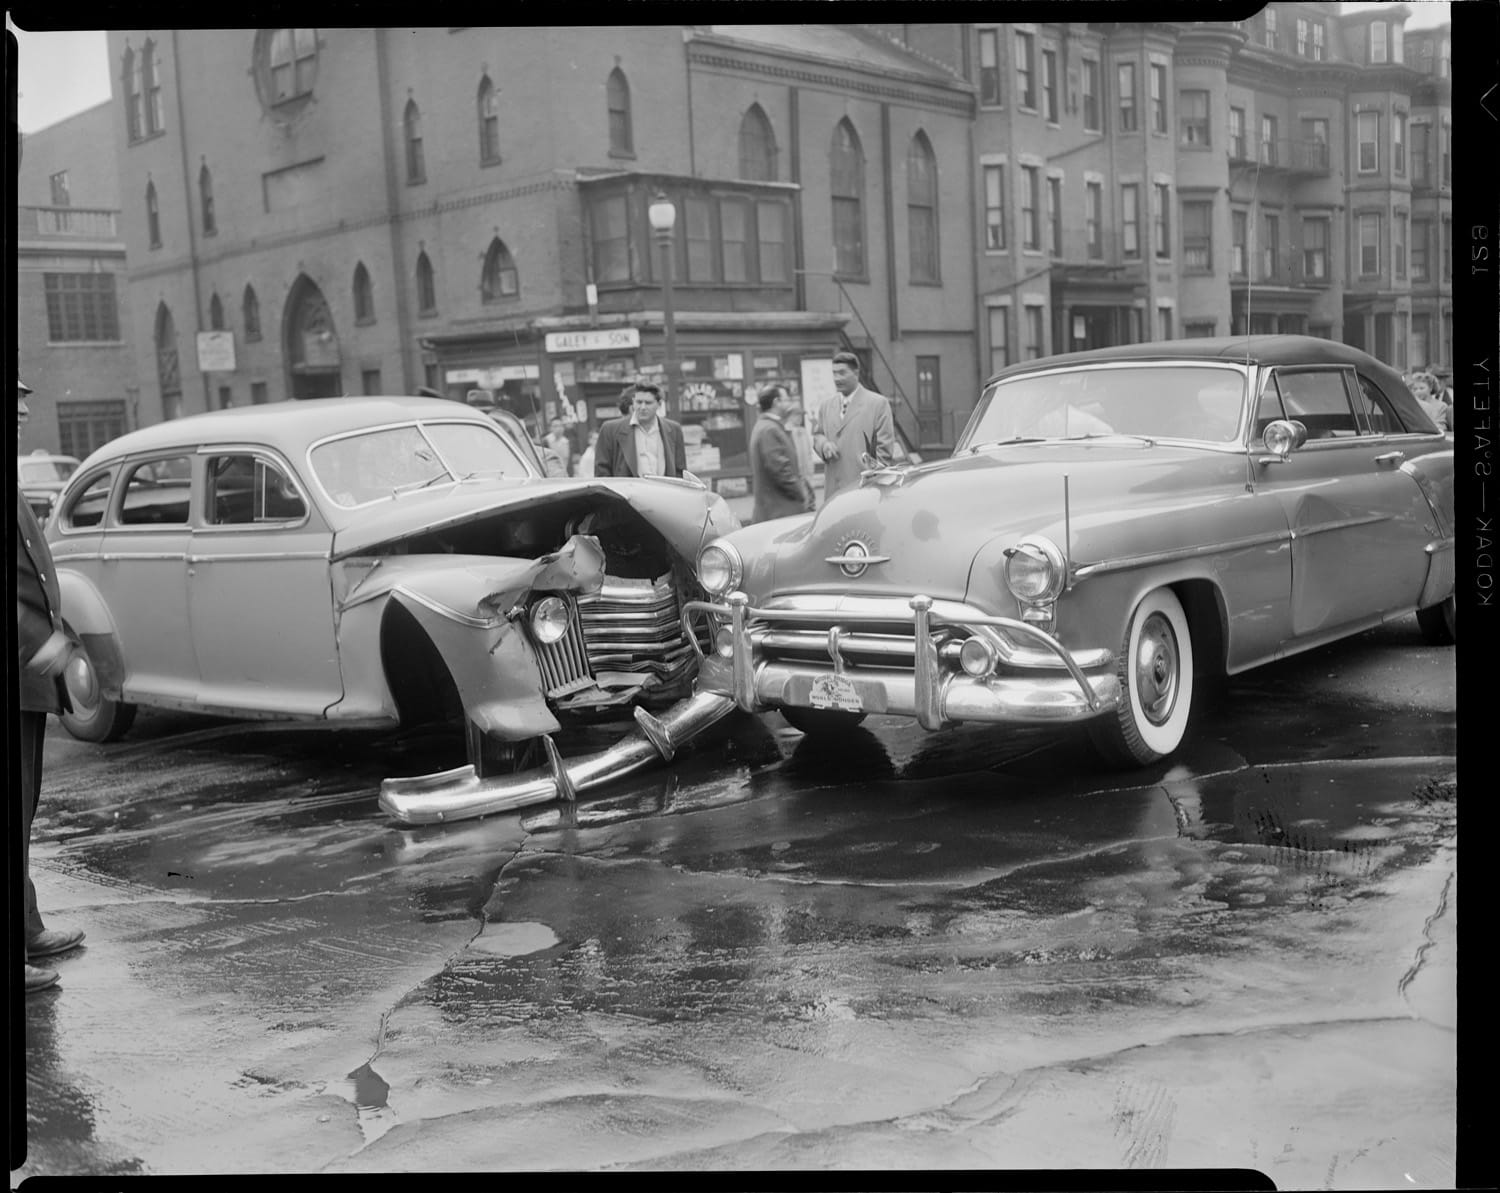 Two old cars collide in a black and white photo